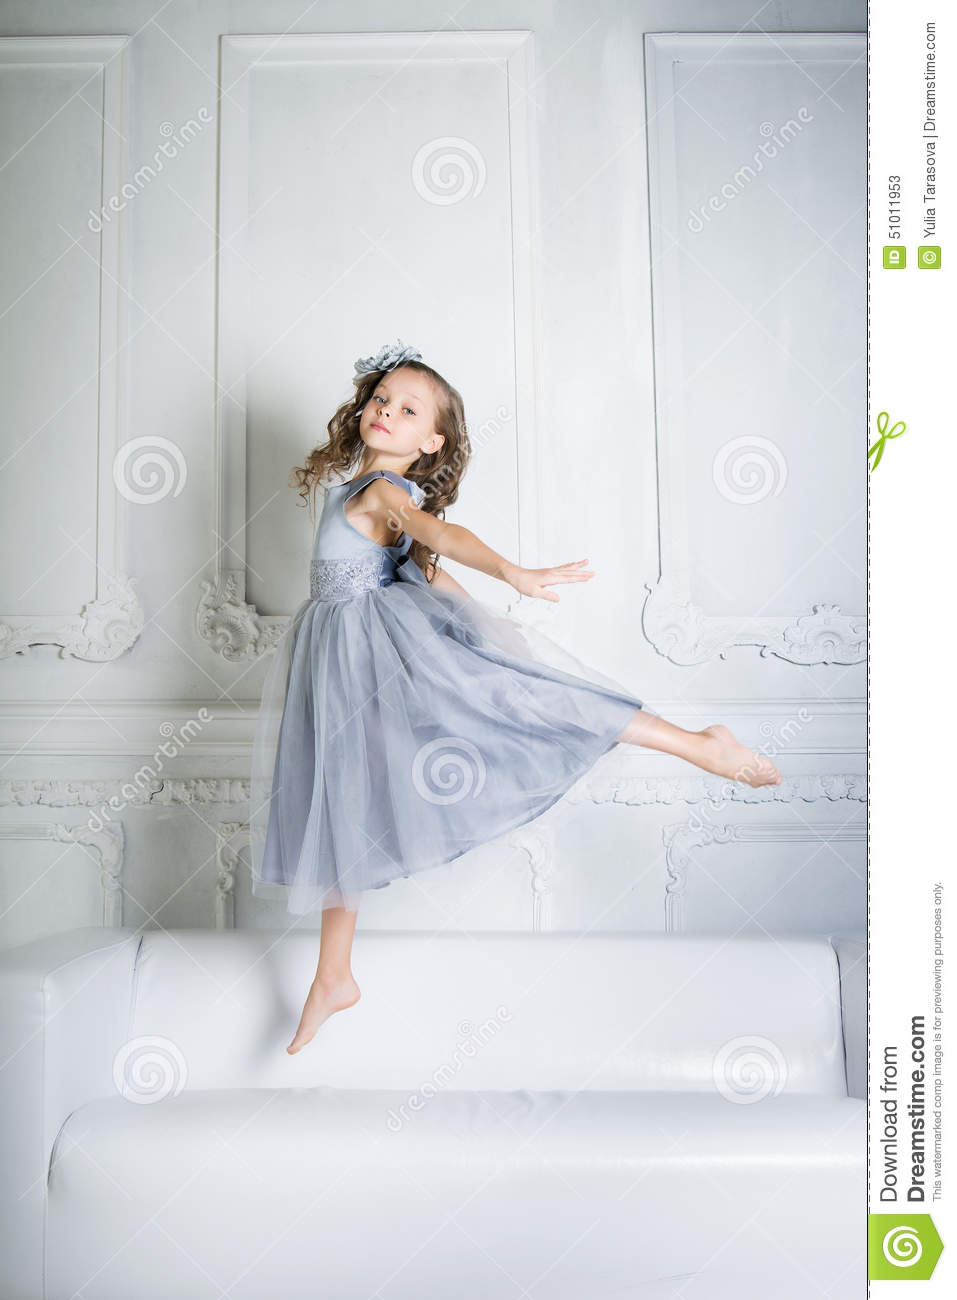 Beautiful Girl Is Jumping On The Sofa Stock Photo Image